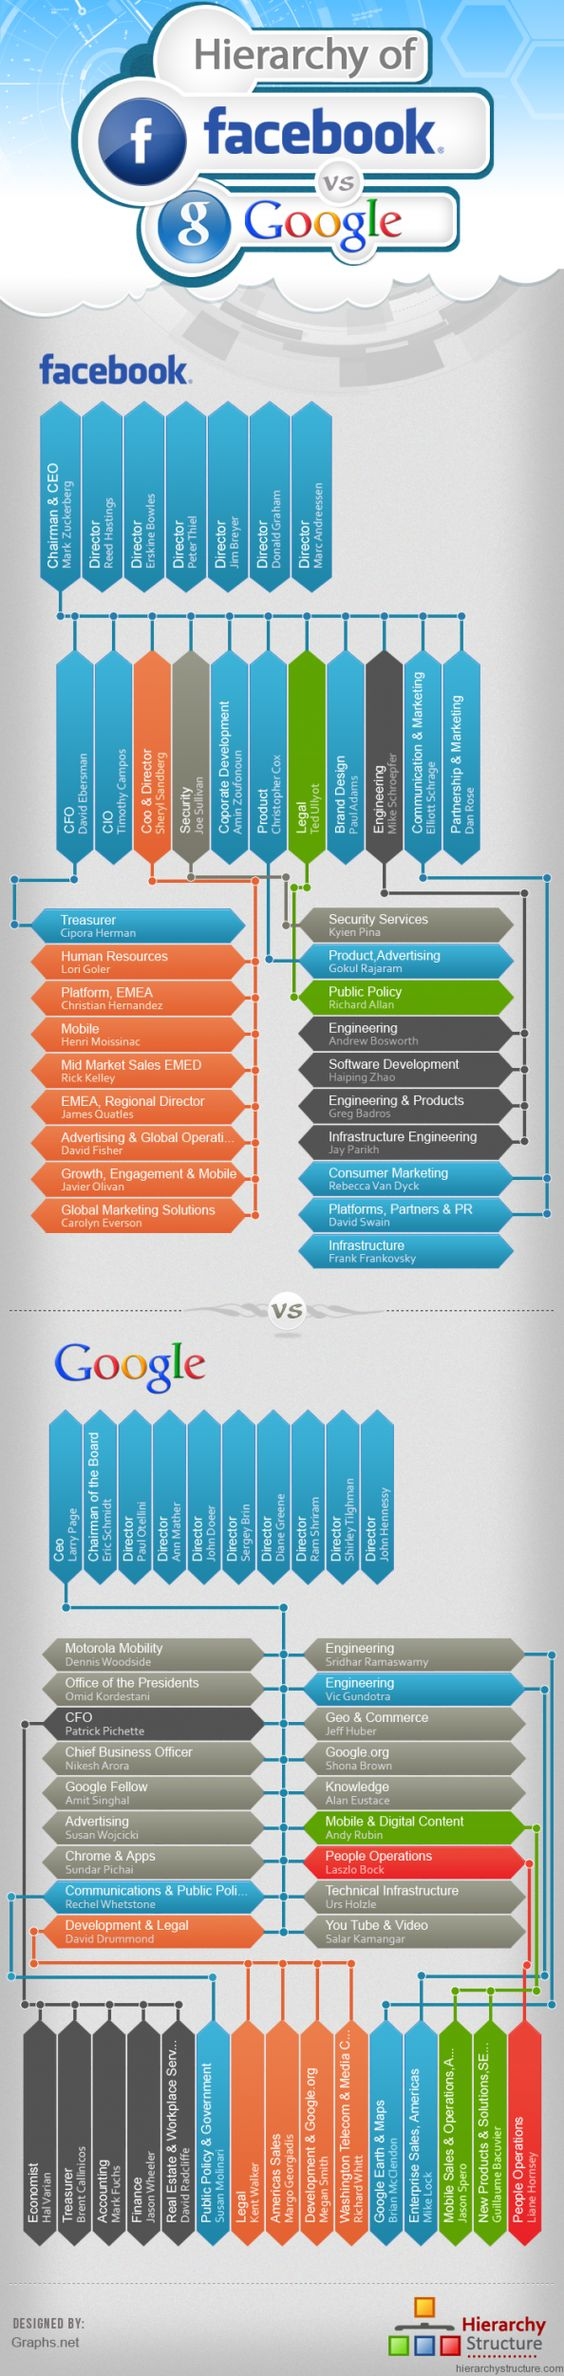 Organizational hierarchy of Facebook vs Google infographic. Can ...